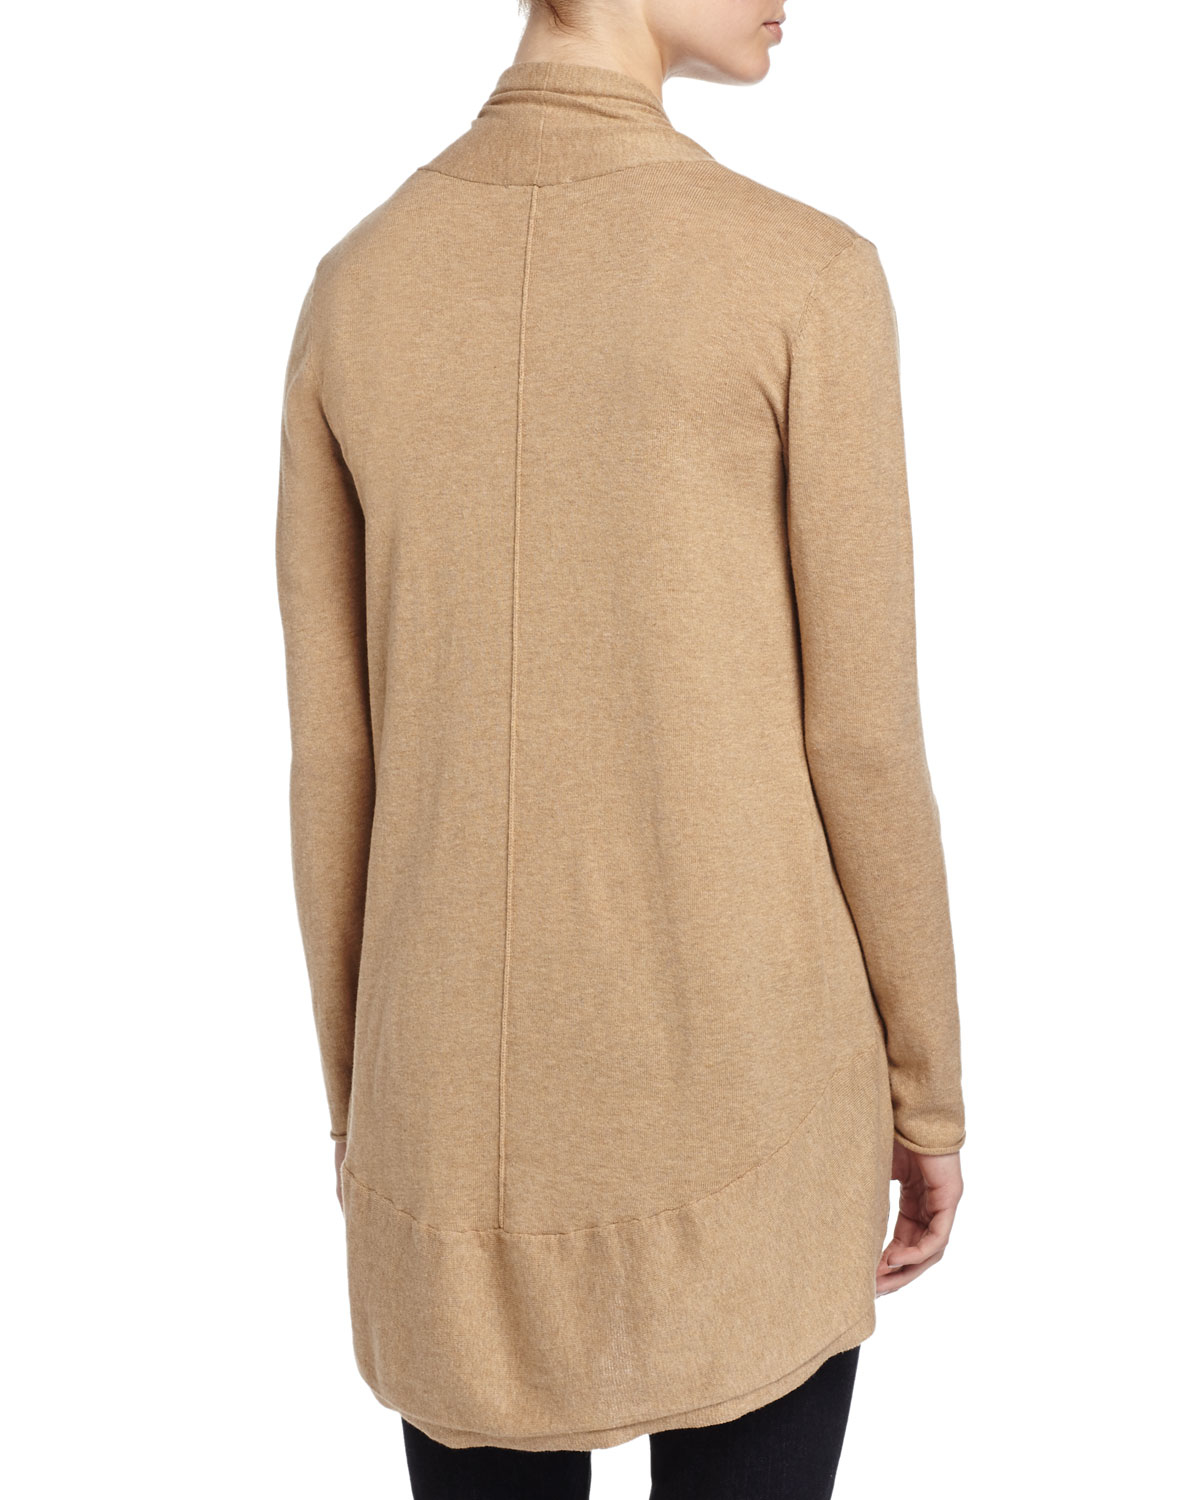 Neiman marcus Long-sleeve Knit Cocoon Cardigan in Brown | Lyst